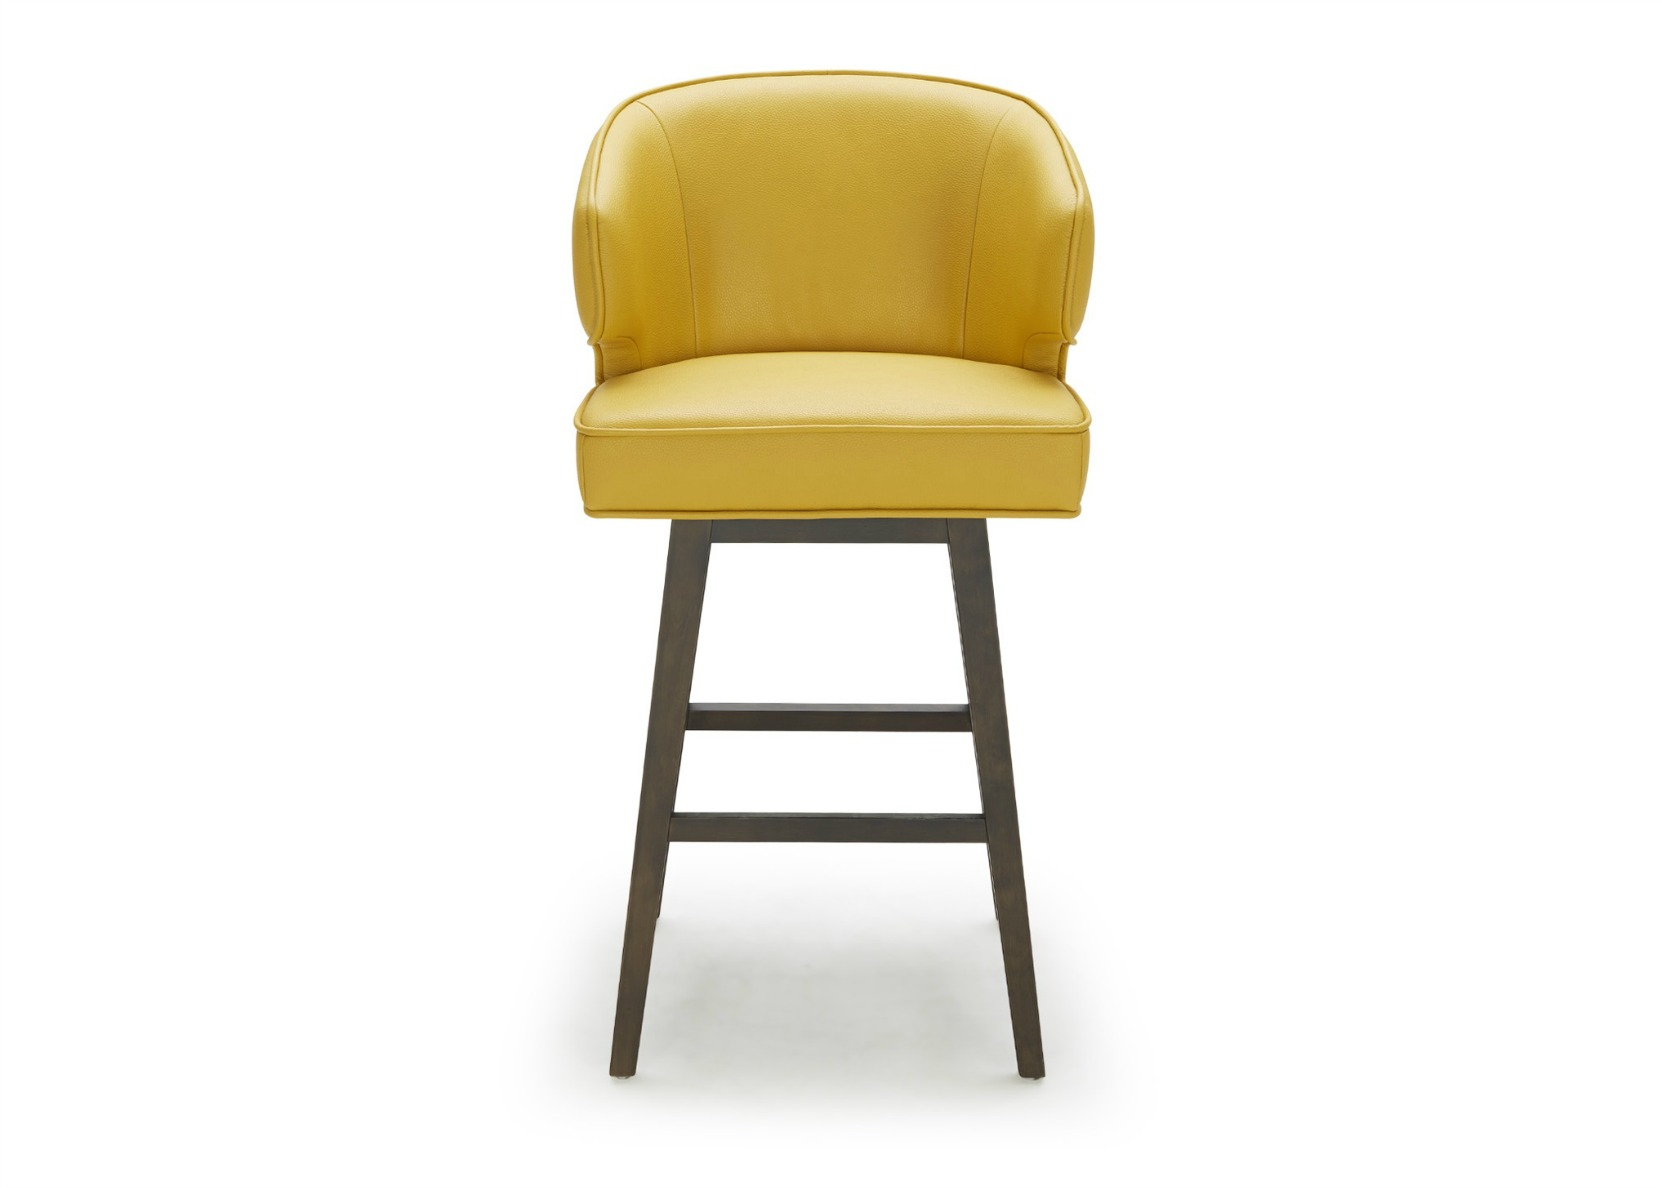 Bright Colored Bar Stools Daisy Bar Stool In Bright Yellow Leather Not Just Brown